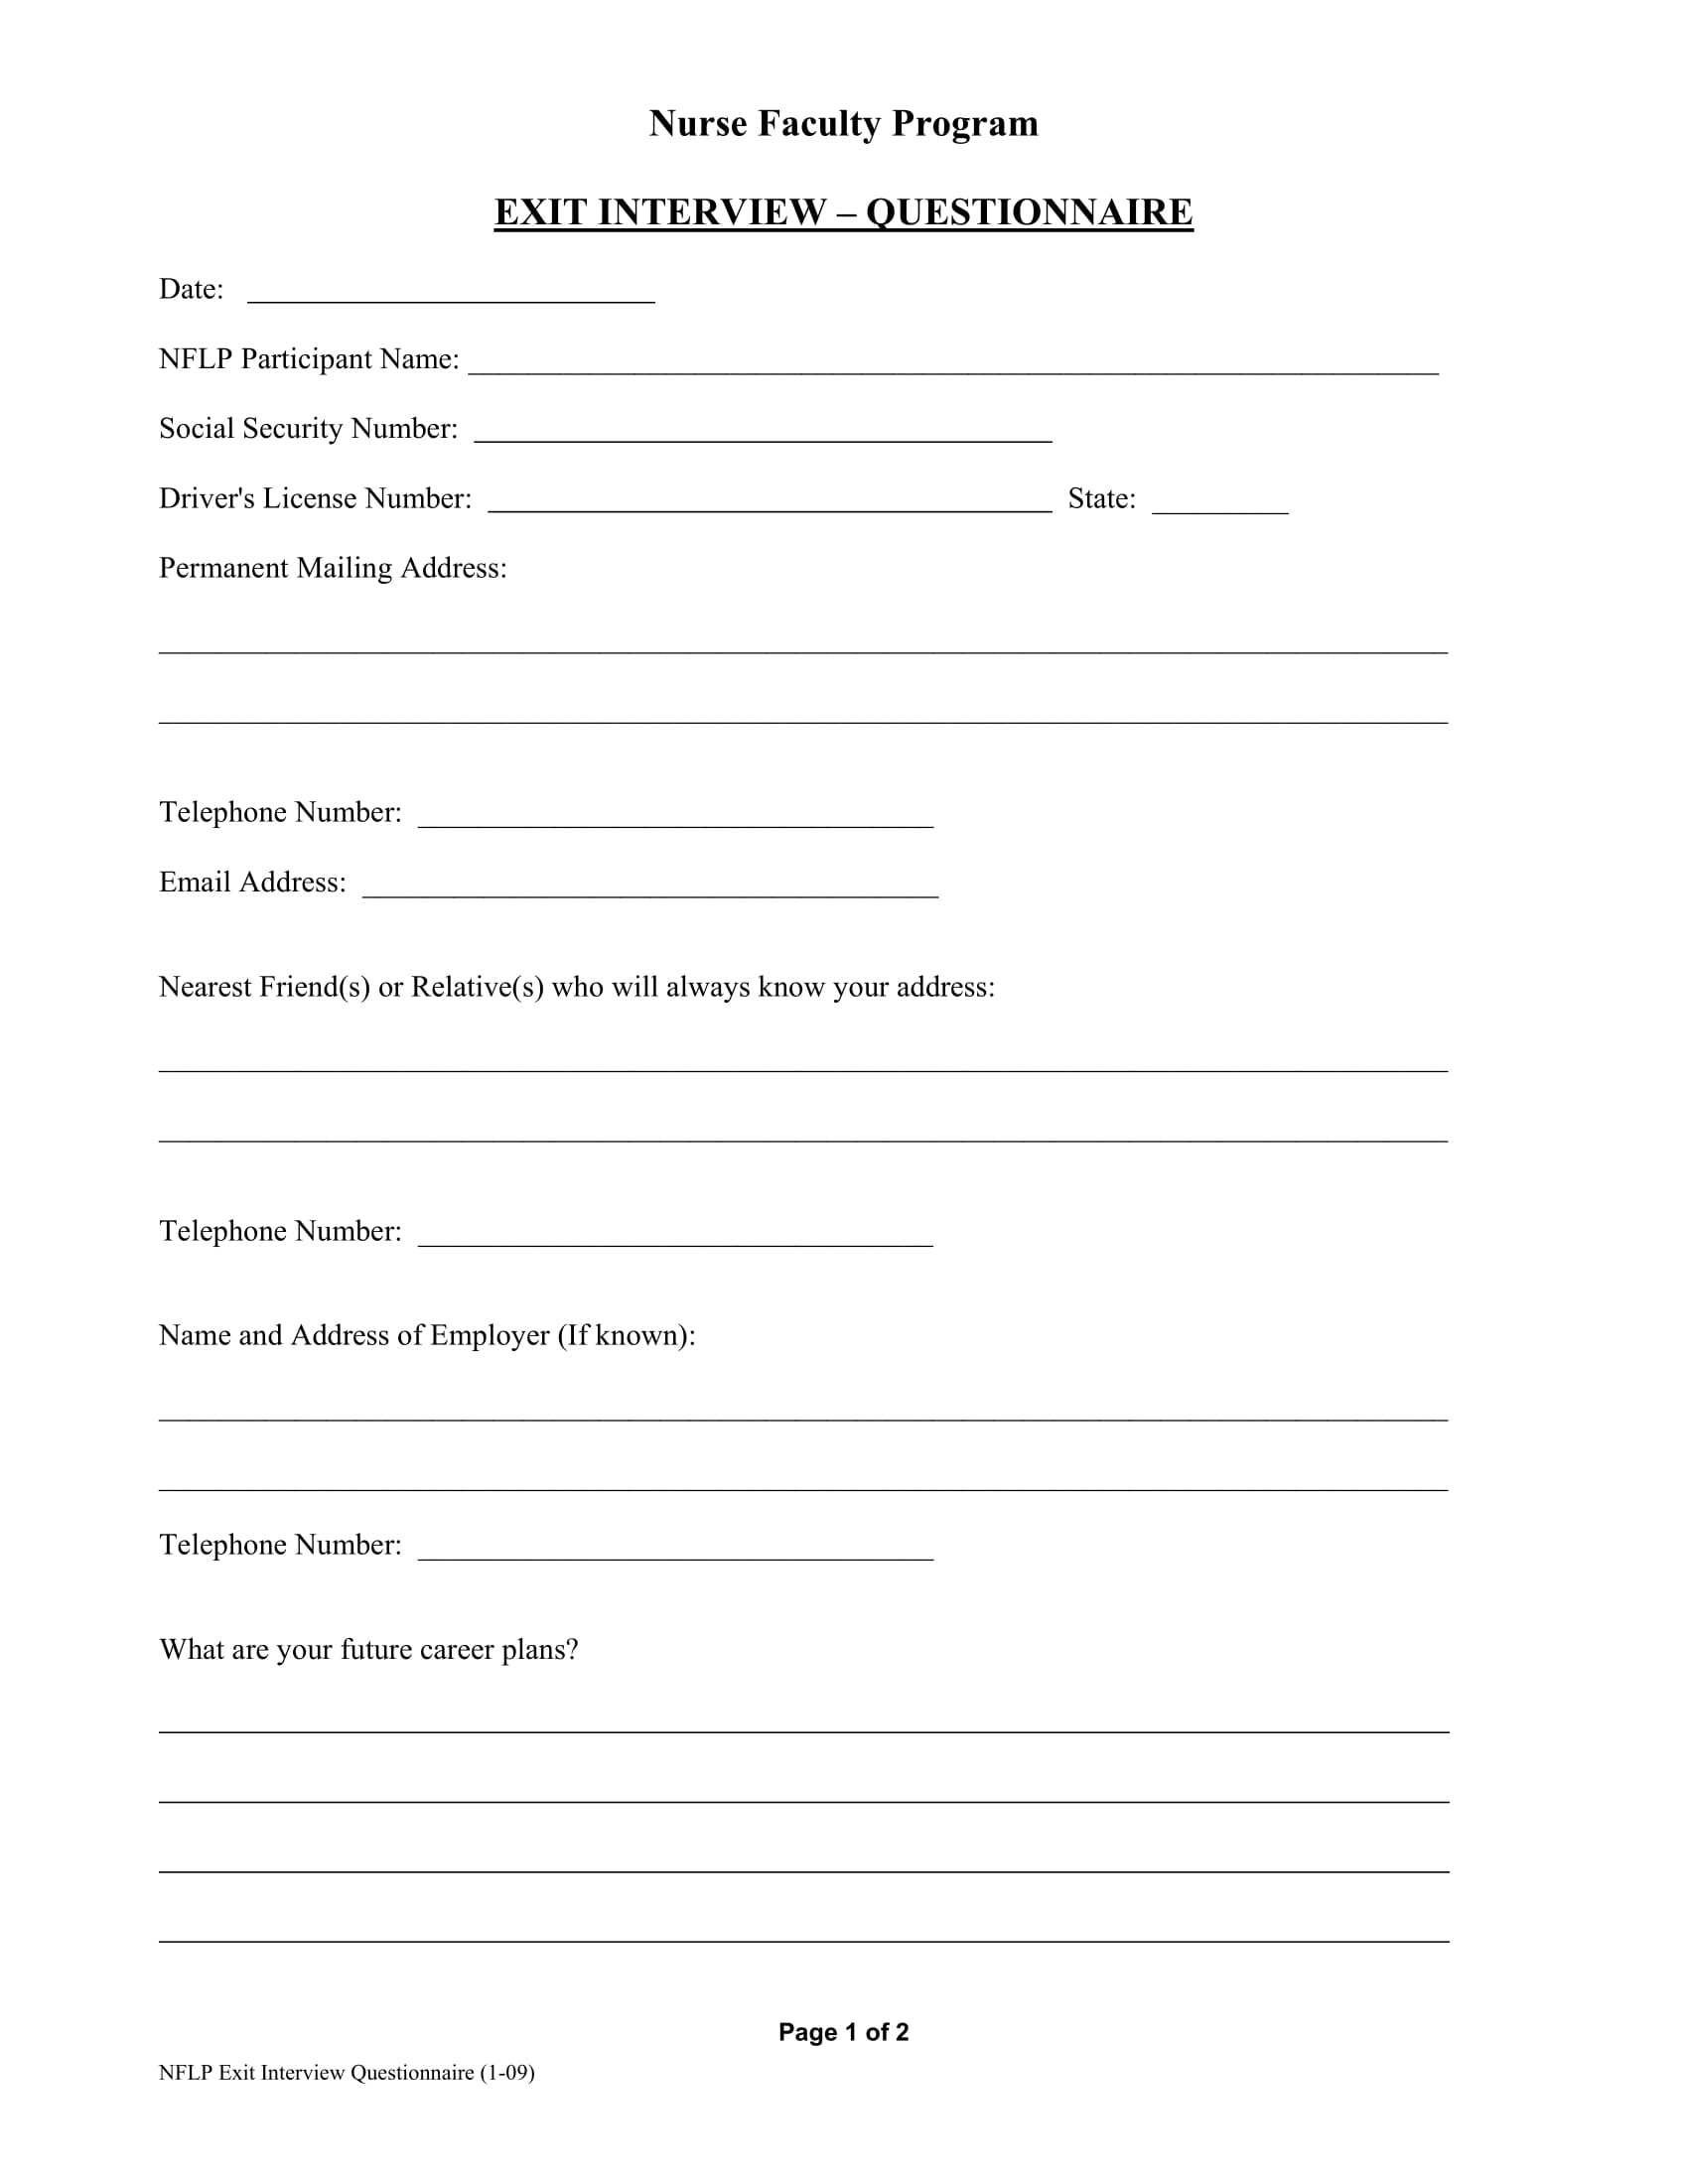 Nurse Faculty Exit Interview Questionnaire Example Top Result 70 New  Employee Exit Interview Questions Template Photography